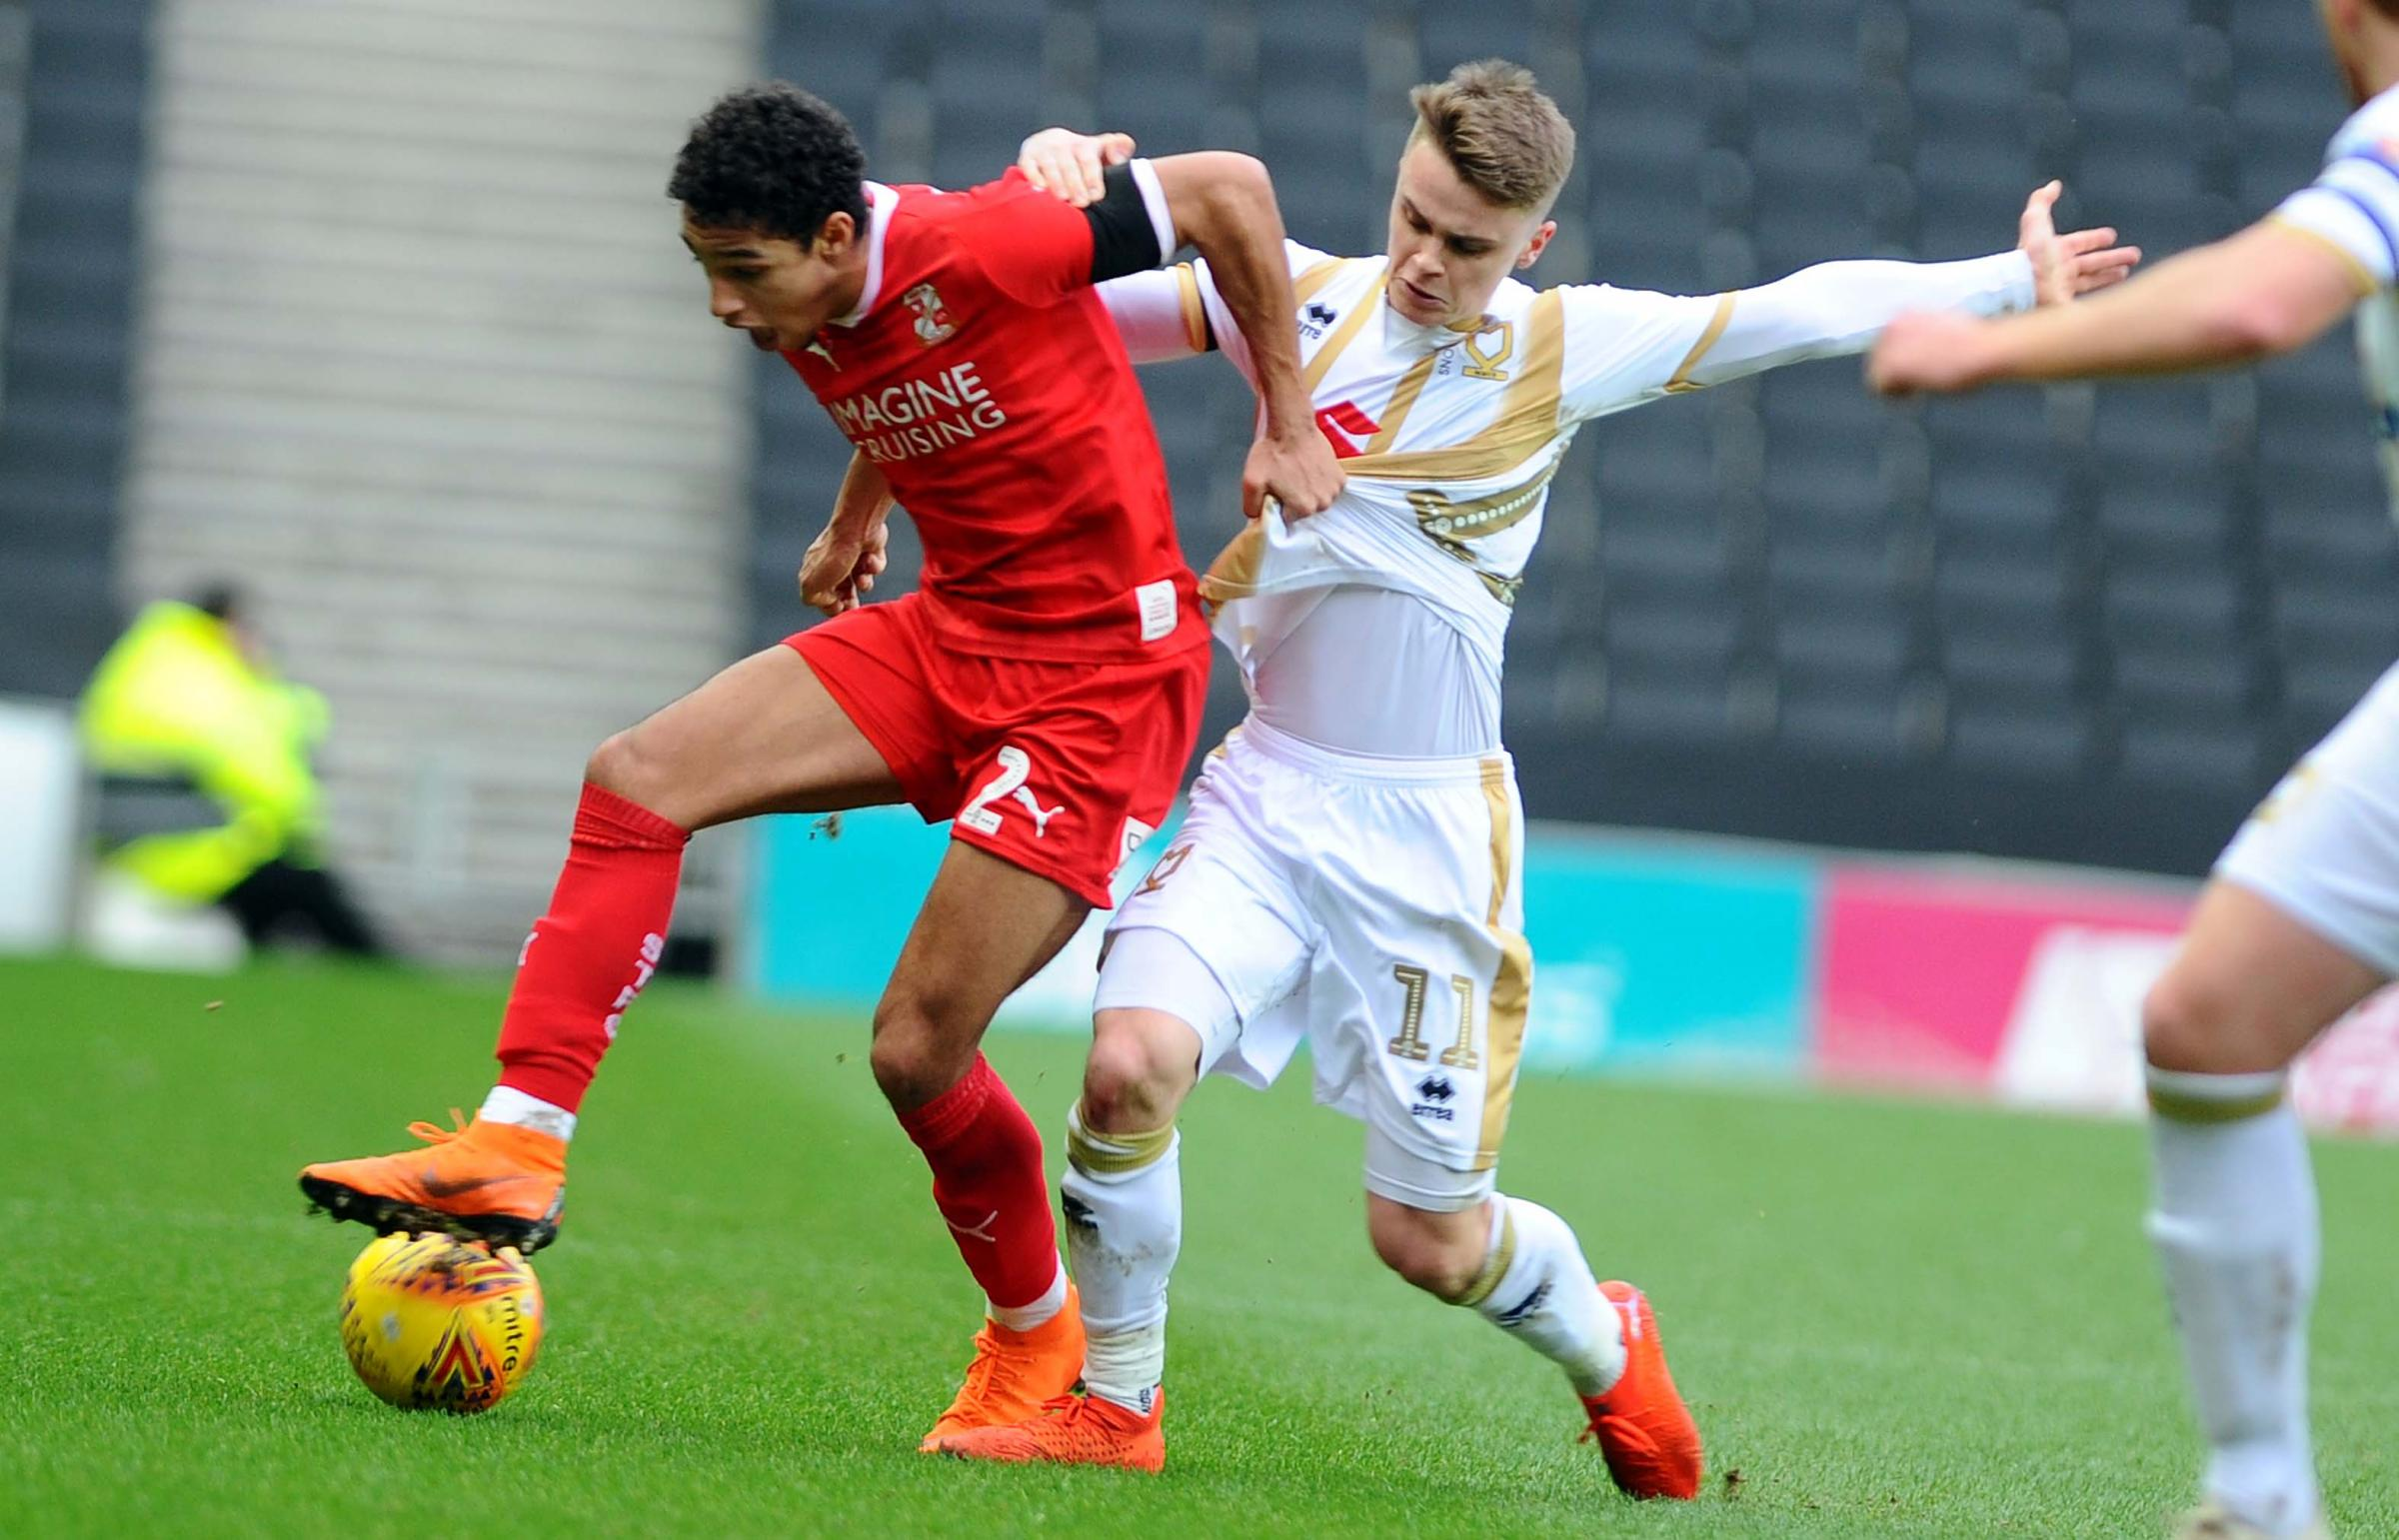 Jake Hesketh in action for MK Dons